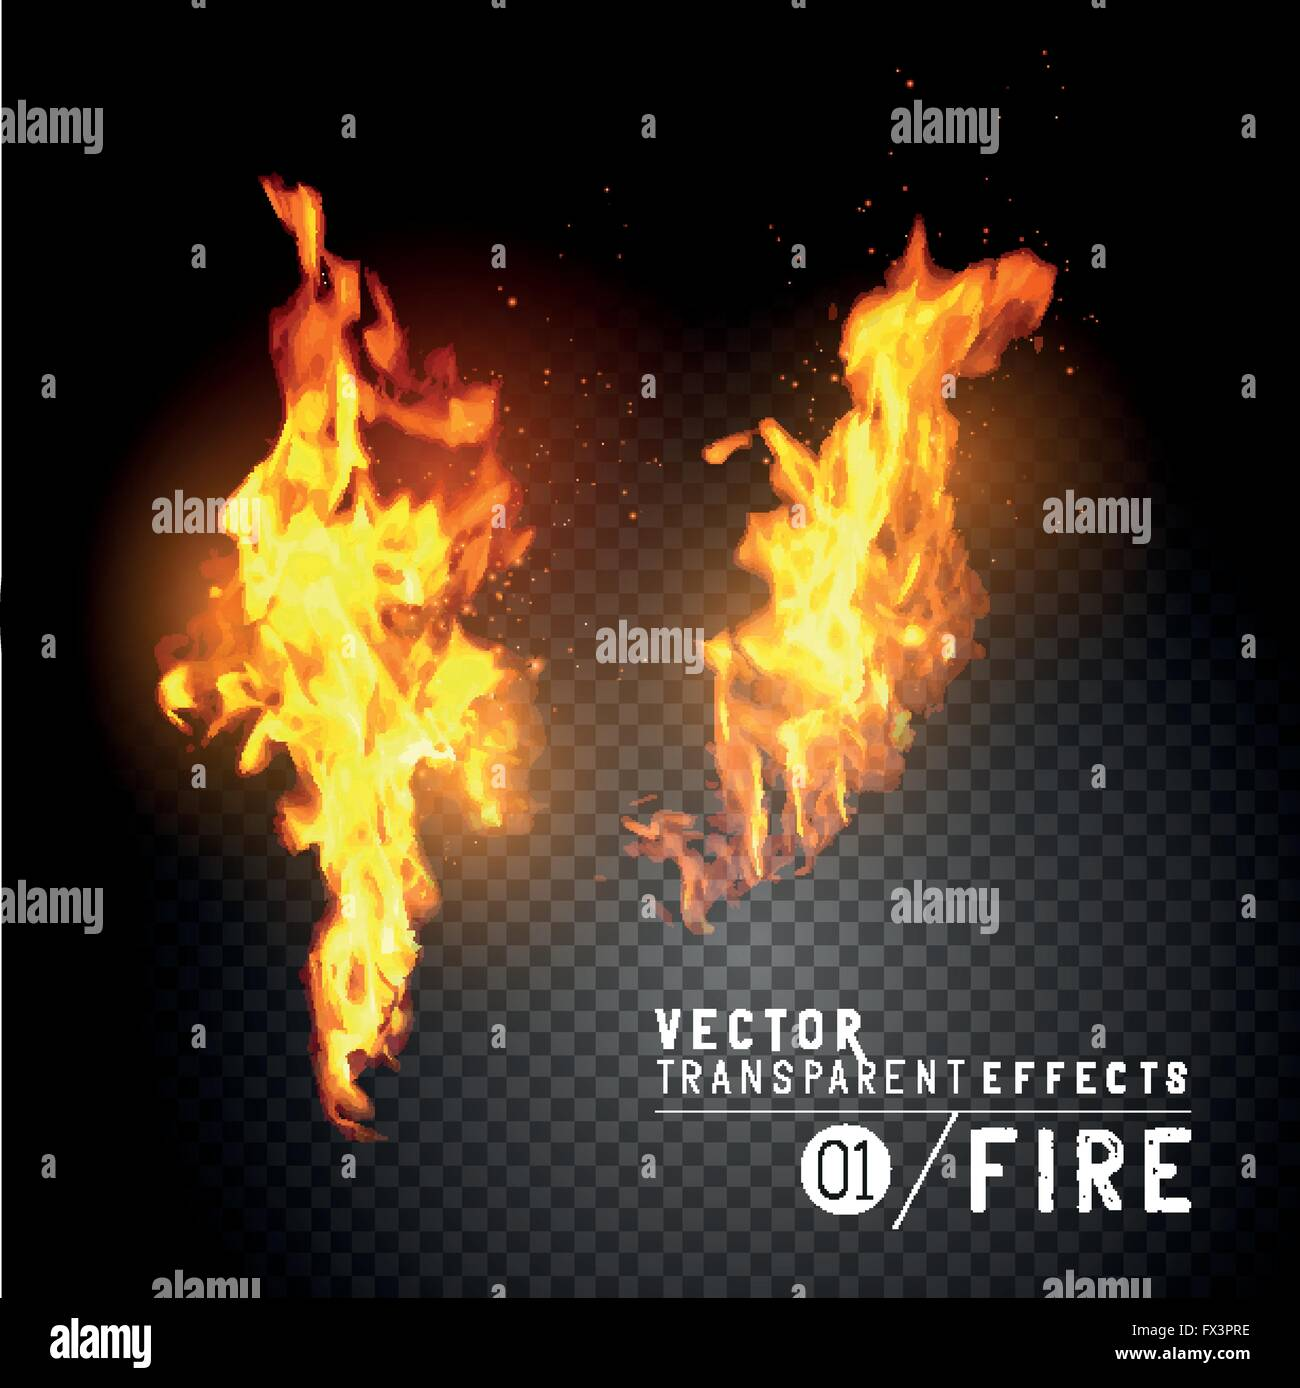 Realistic Vector Fire Flames. Transparent vector effects.  Flames with sparks. Vector illustration. Stock Vector